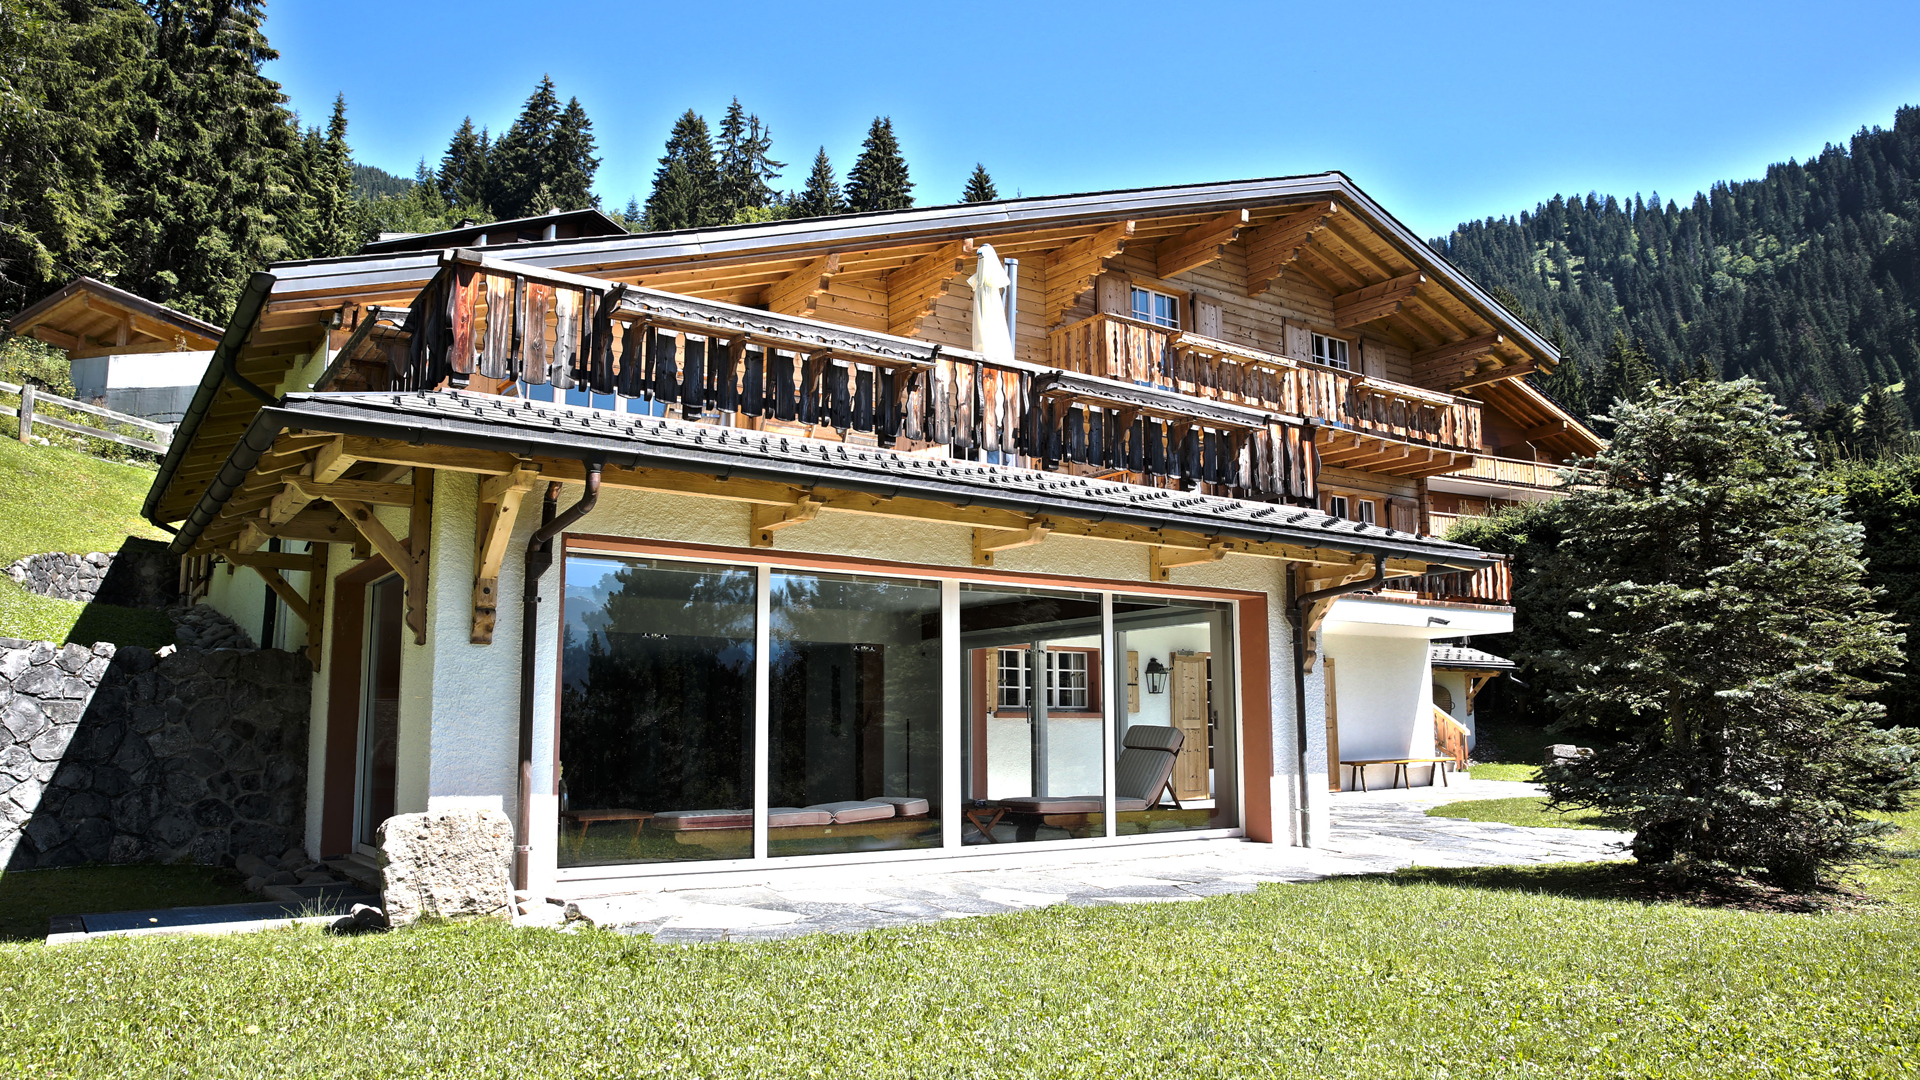 Chalet Clipper Chalet, Switzerland